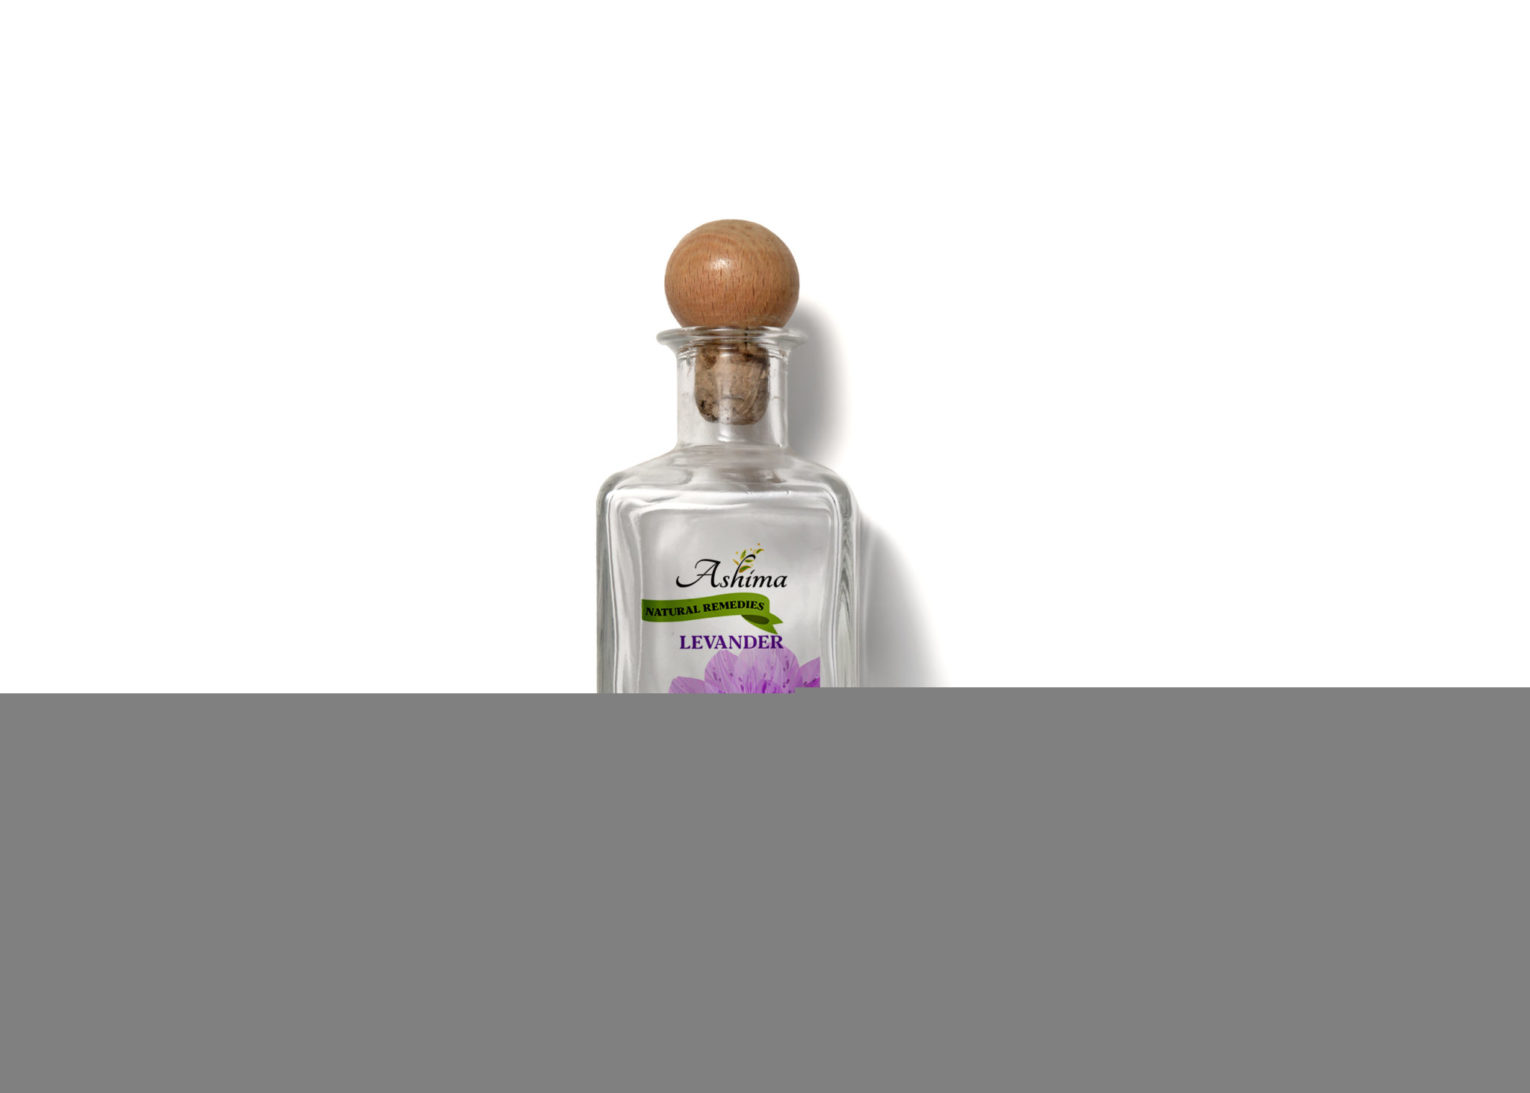 Lavender Scent Fragrance Mini Bottle Label Mockup